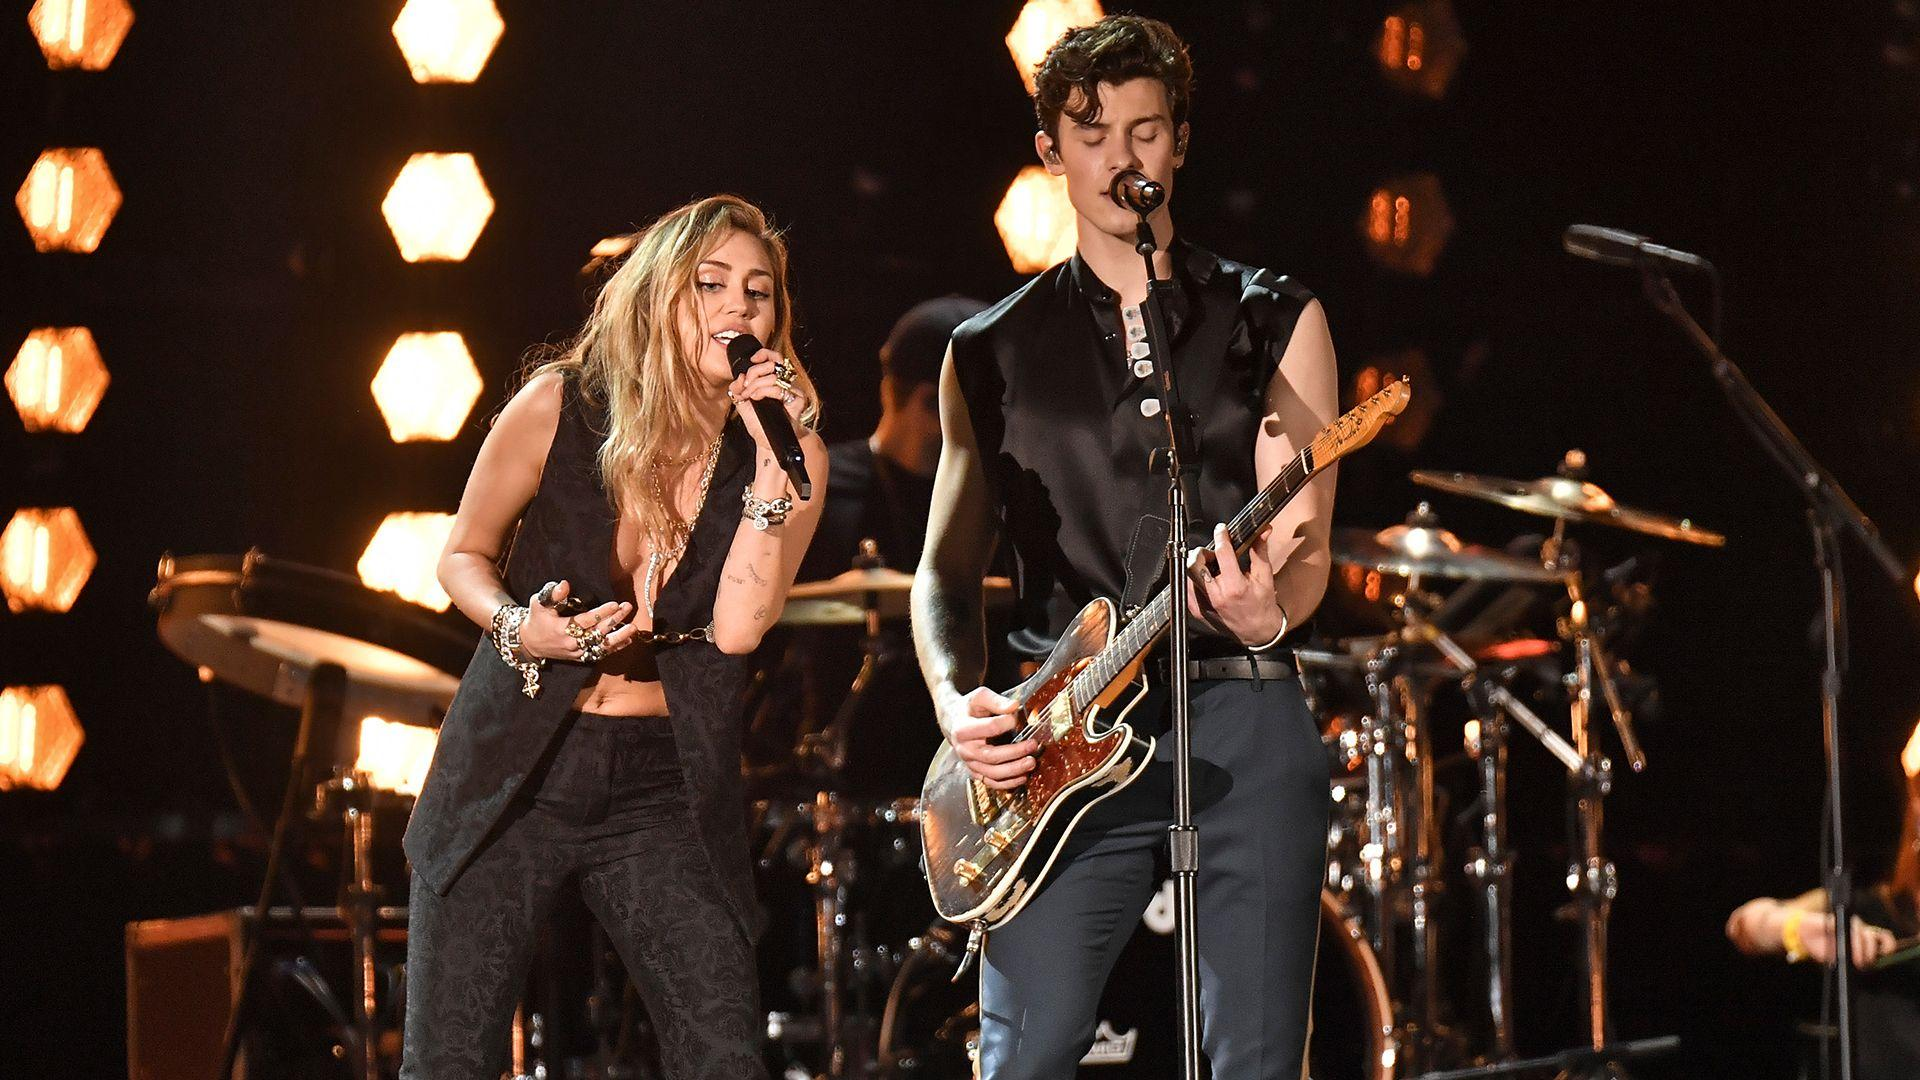 Miley Cyrus & Shawn Mendes Grammys 2019 Performance Video | StyleCaster